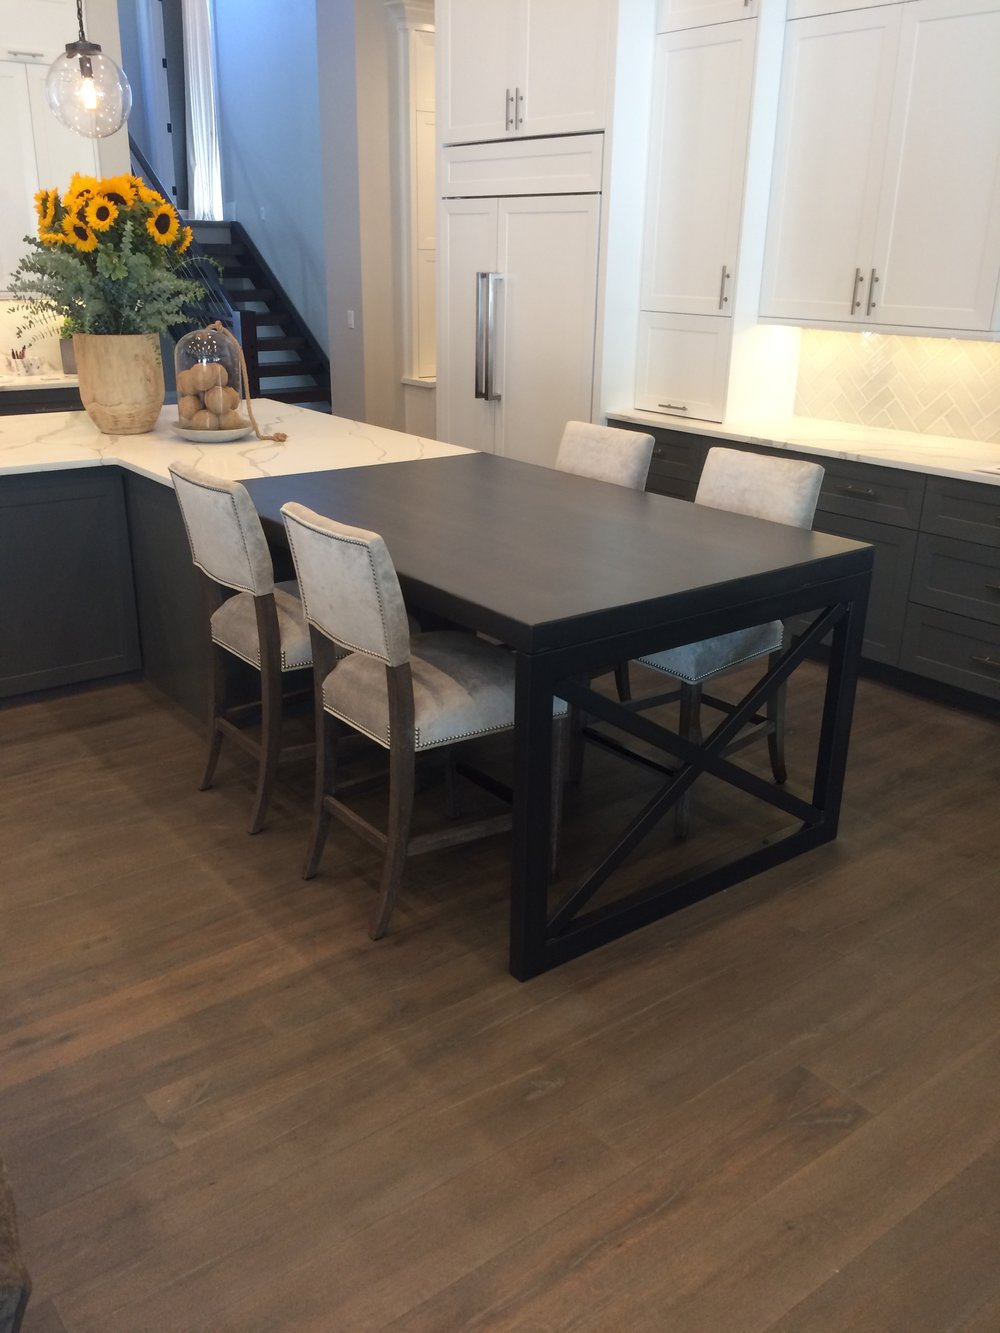 Butcher Block Island with Metal Base